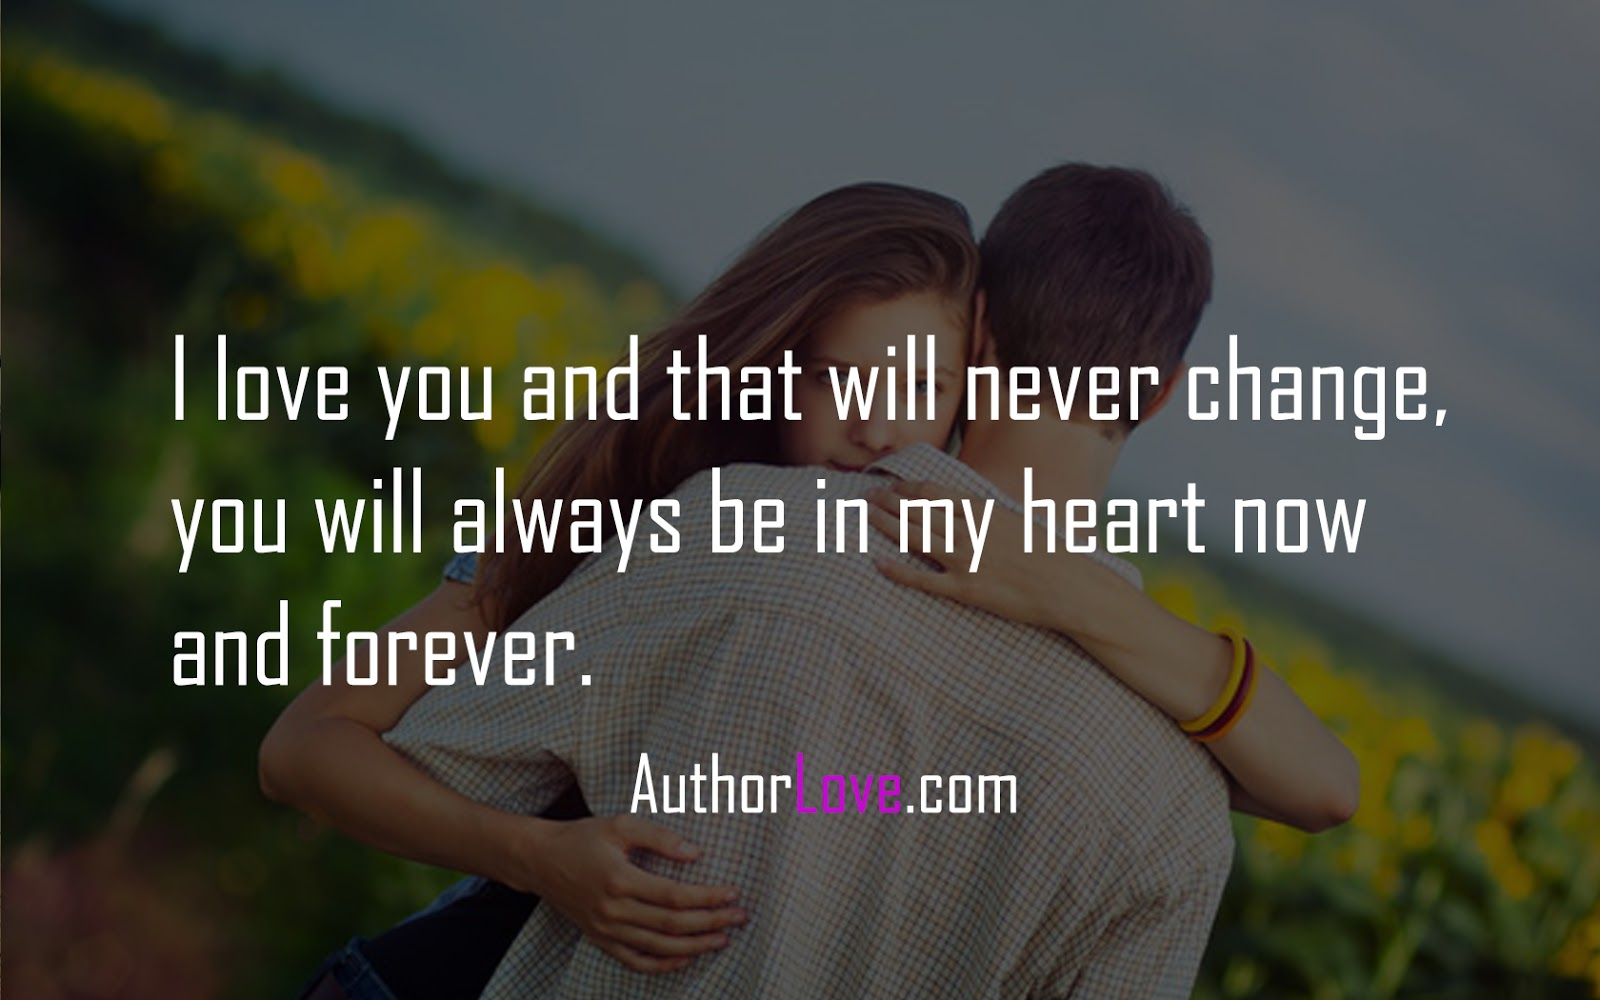 Love Quotes For My Love I Love You And That Will Never Change  Love Quotes  Author Love